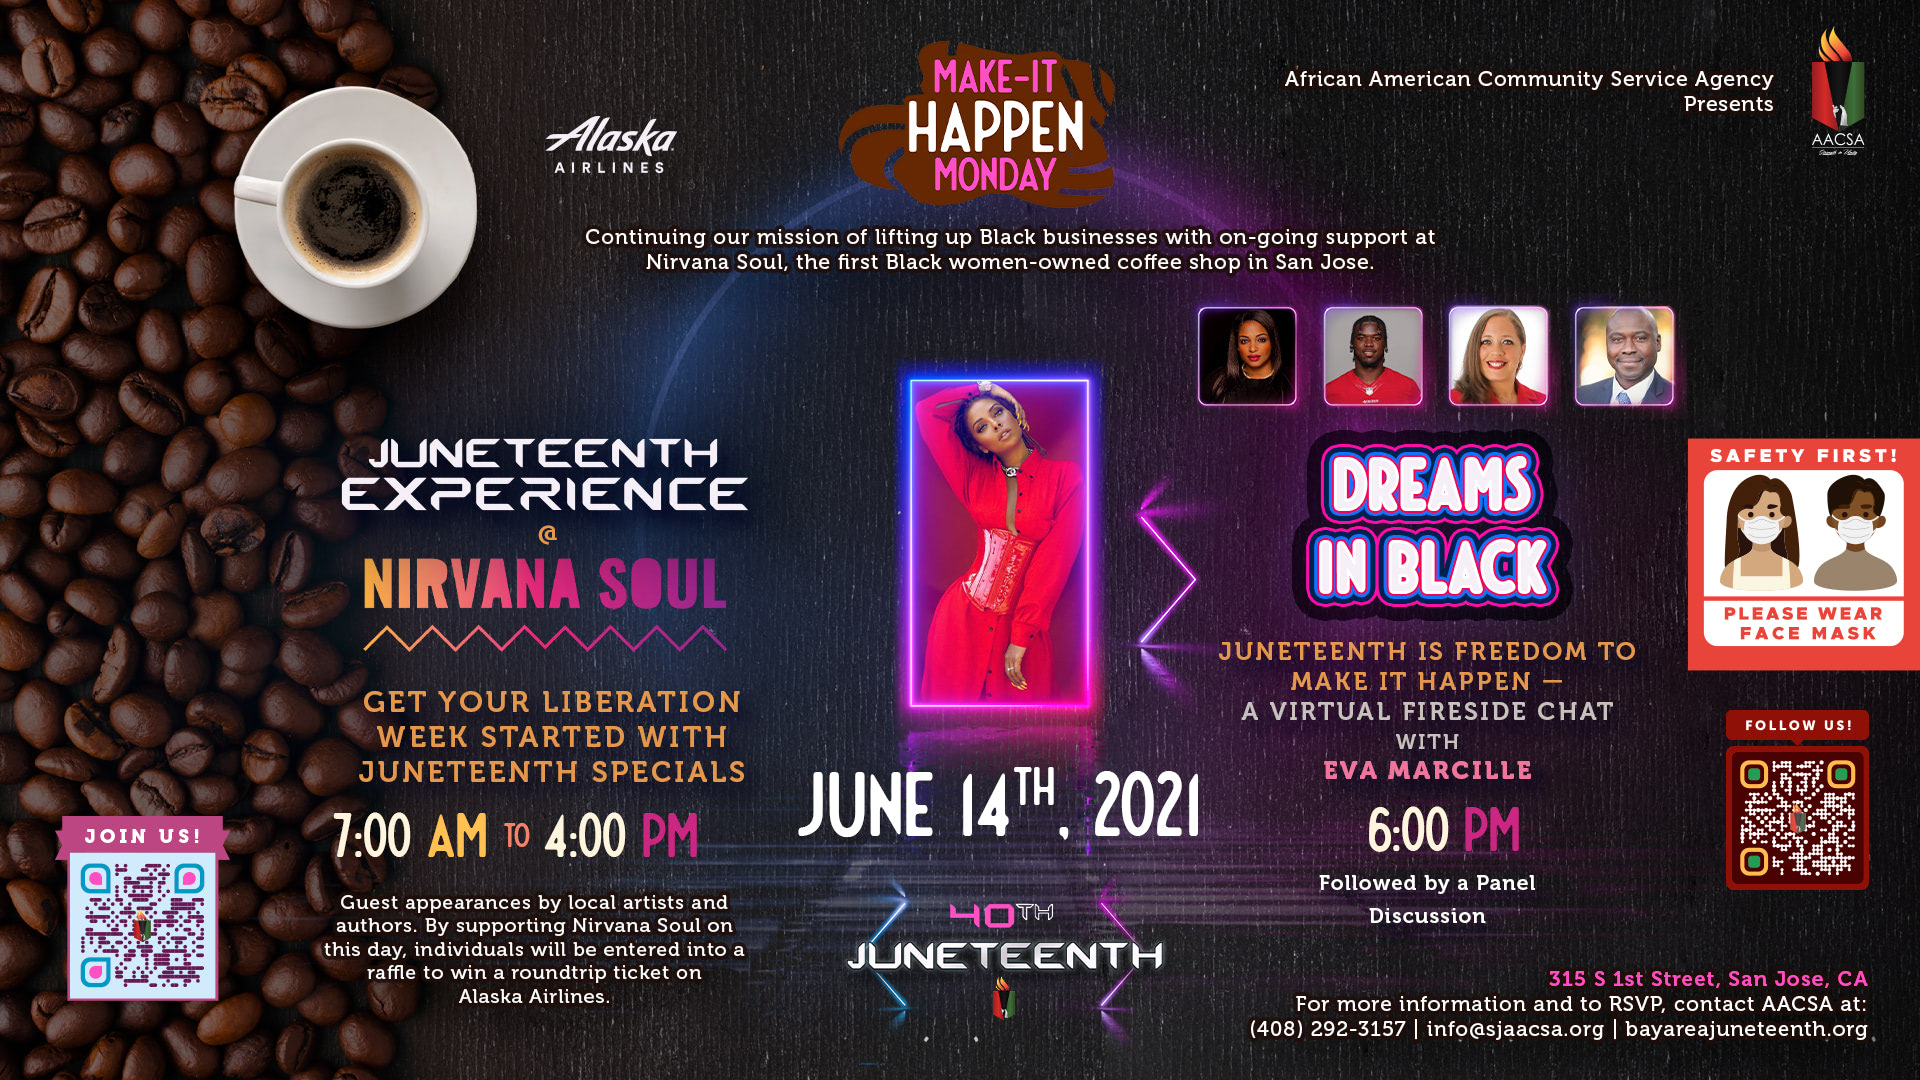 """Banner for the 40th Annual Juneteenth In The Park Celebration Week event: Make It Happen Monday. June 14th. Starting with the Juneteenth Experience at Nirvana Soul from 7:00am until 4:00pm. Followed by """"Dreams in Black"""", a virtual fireside chat with Eva Marcille at 6:00pm, finishing off with a panel discussion. Click the banner to see event details & sign-up!"""